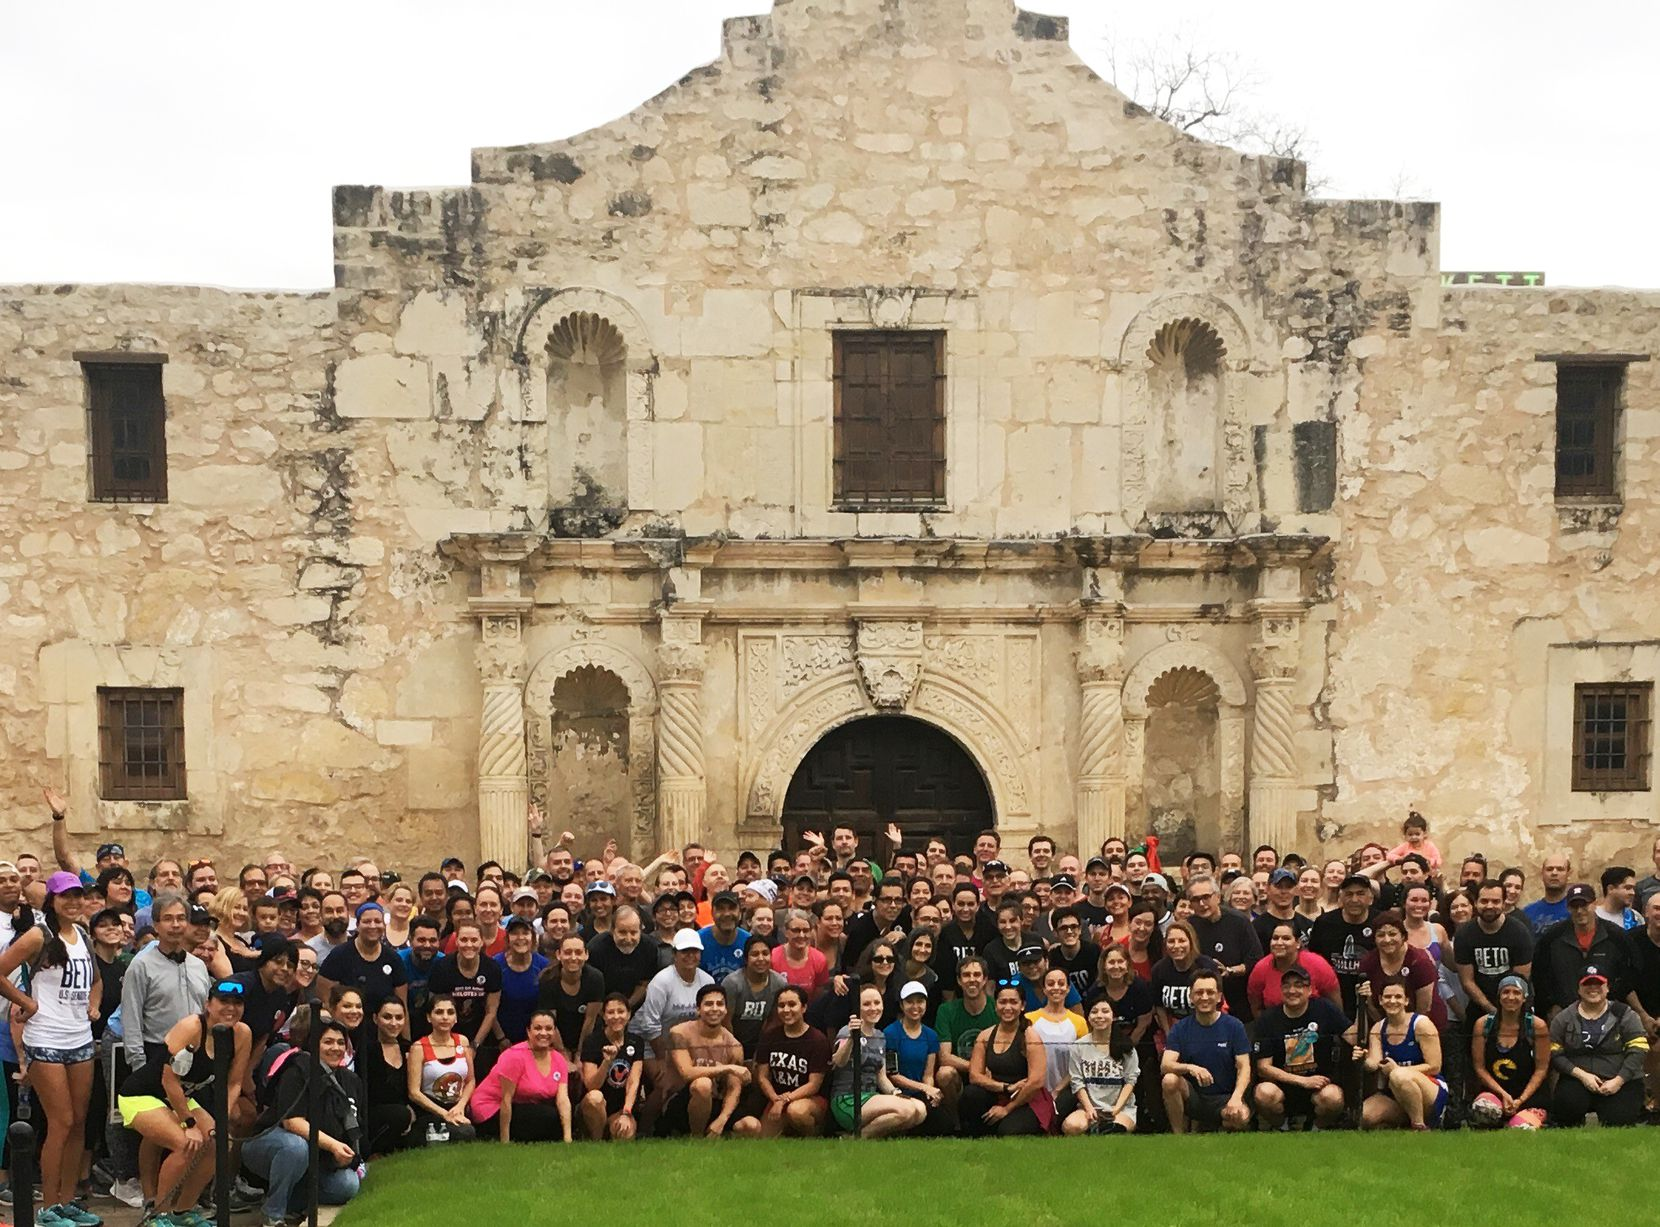 Beto O'Rourke, in the center, second row, with a group of runners at the Alamo in San Antonio.